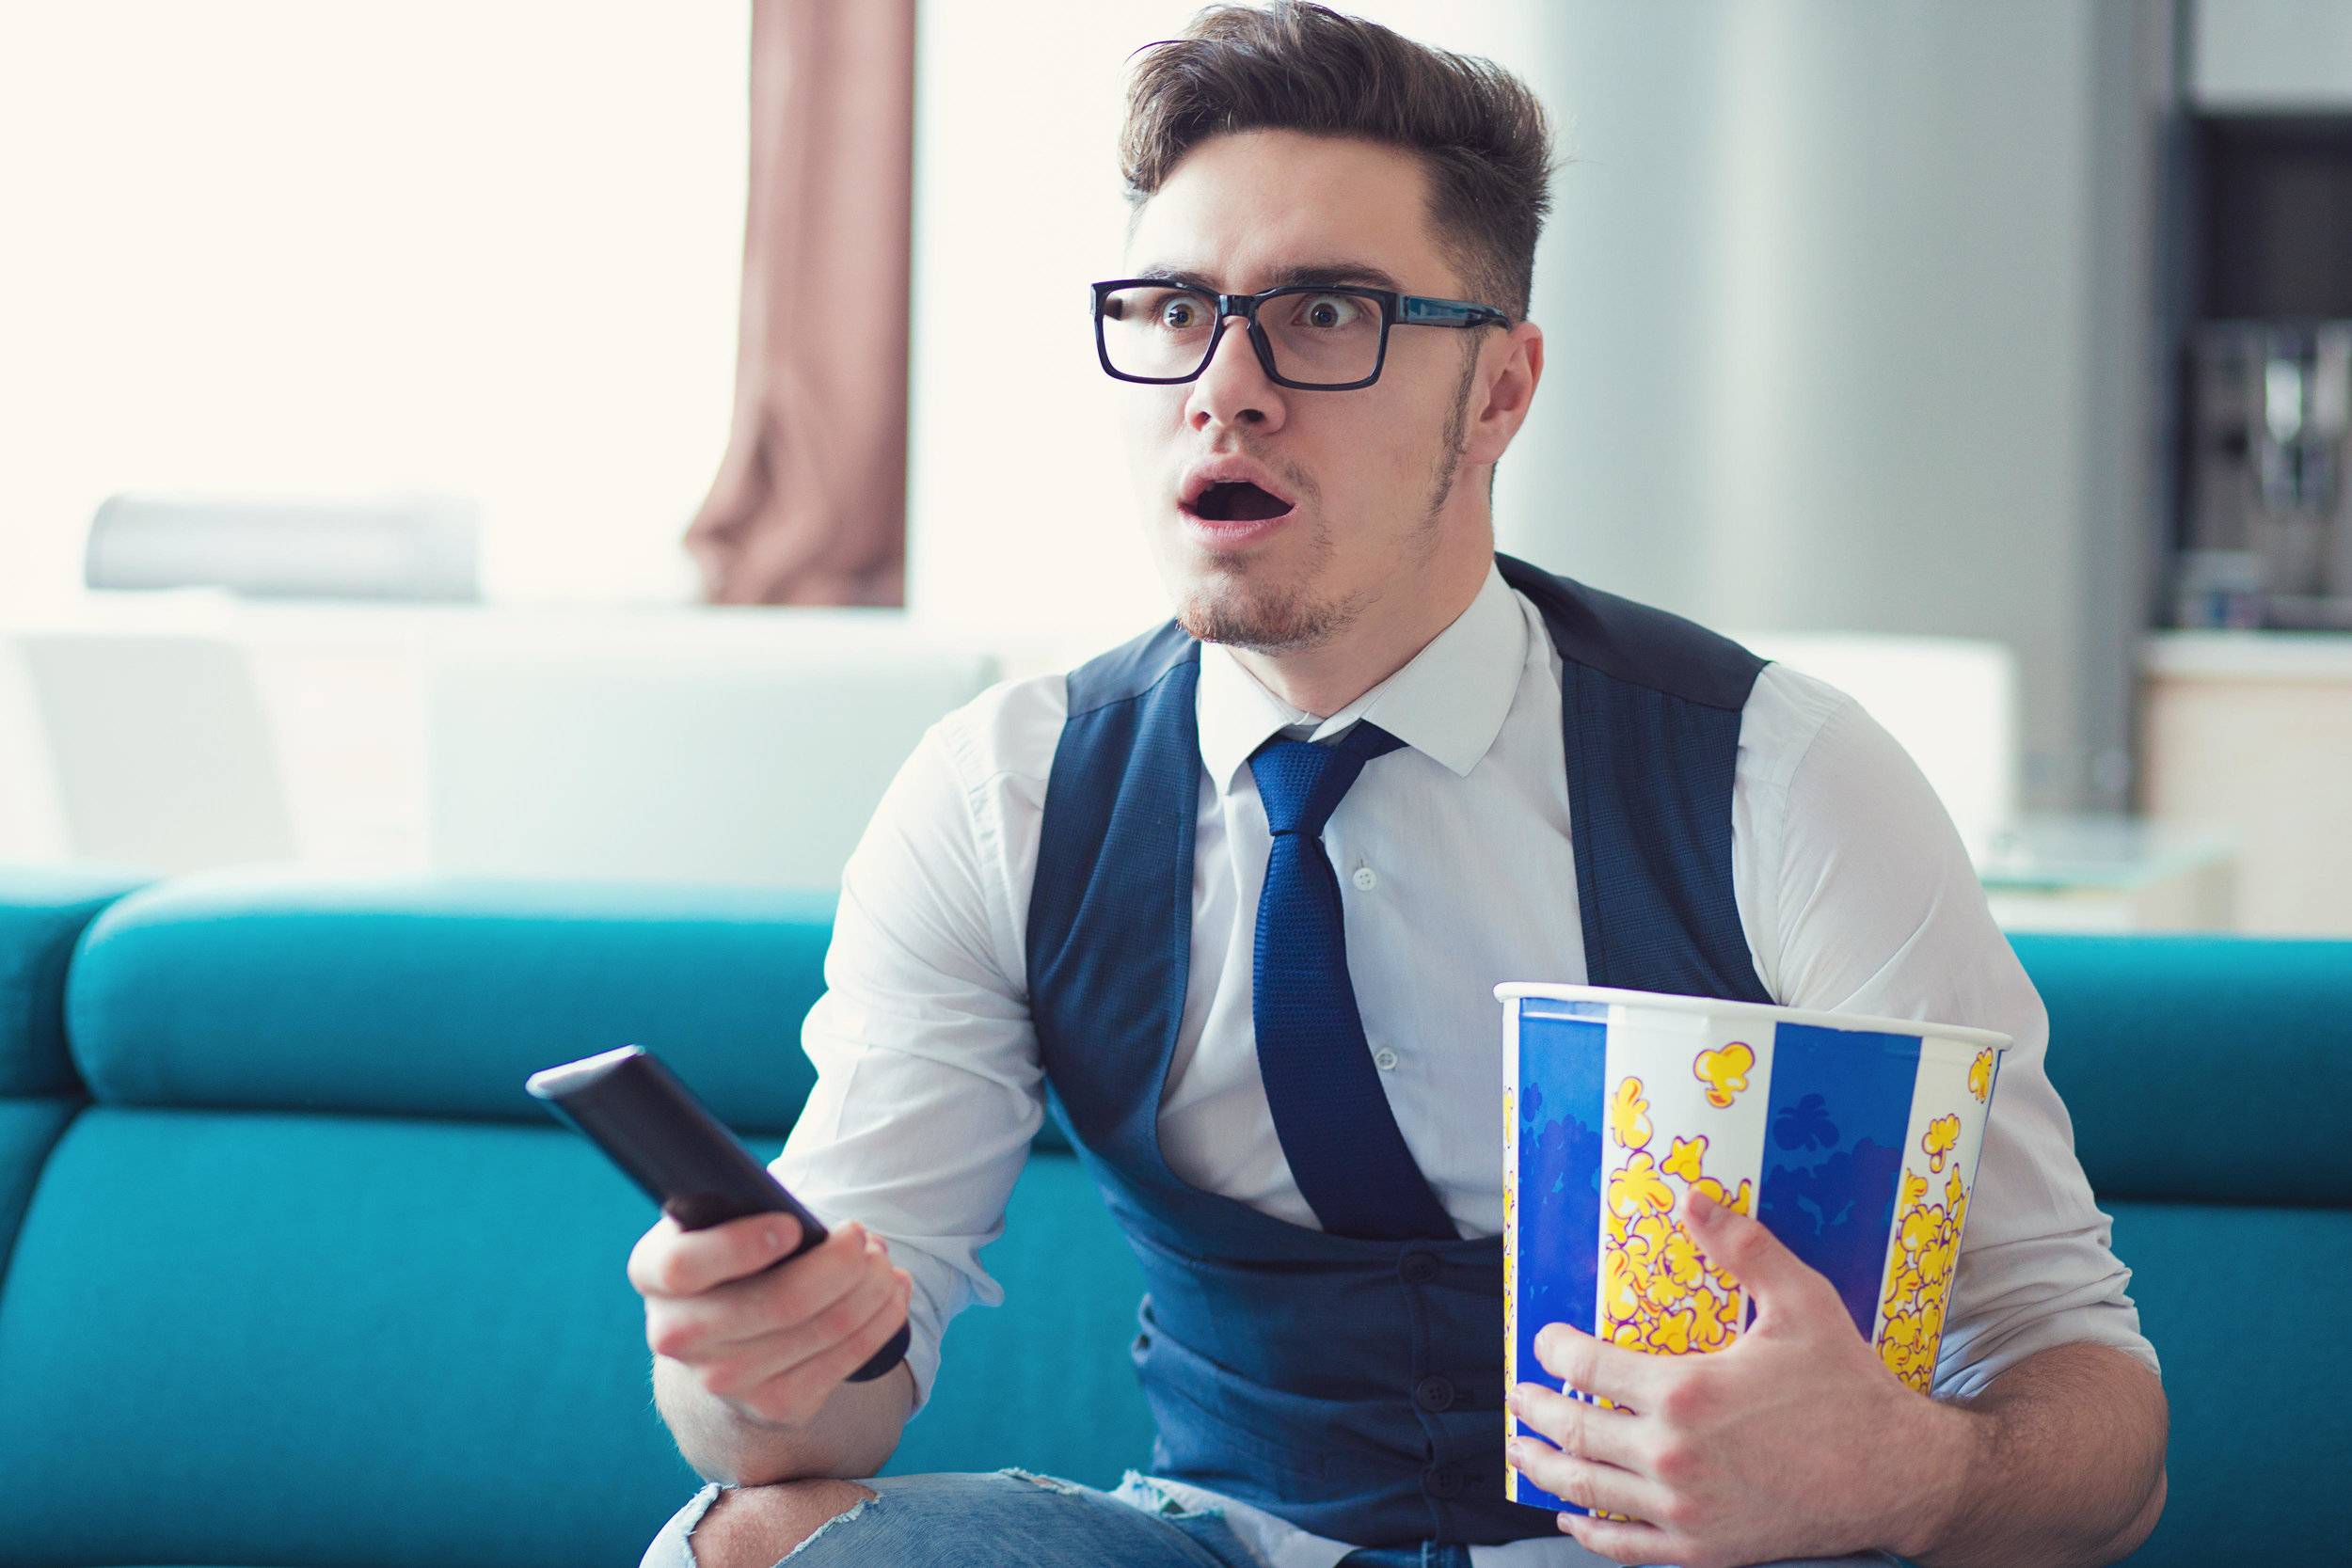 Man watching TV with popcorn